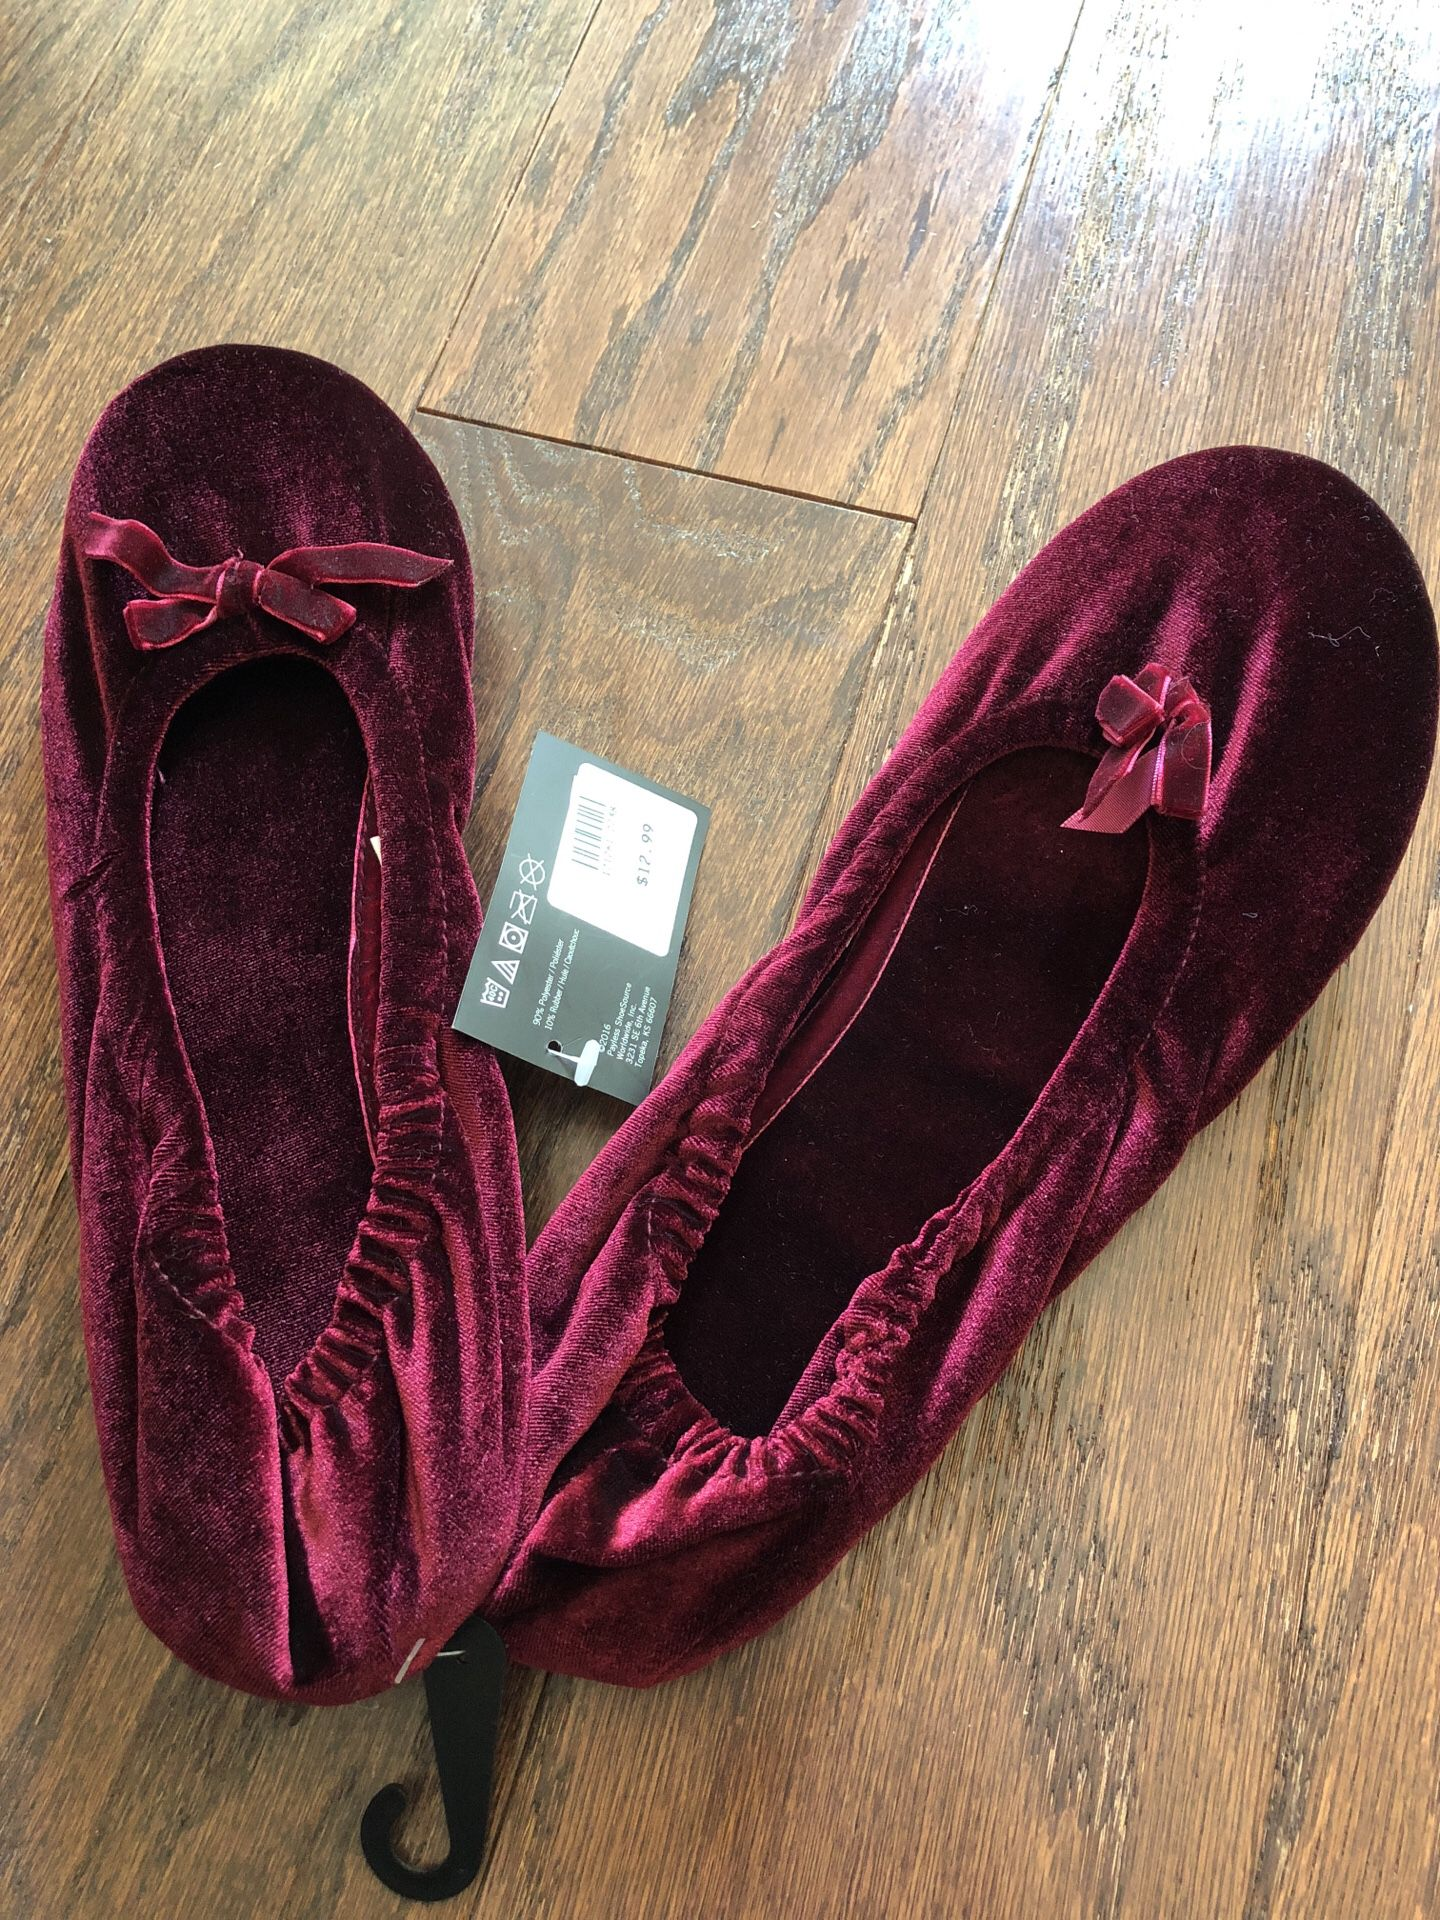 New $6 house slippers